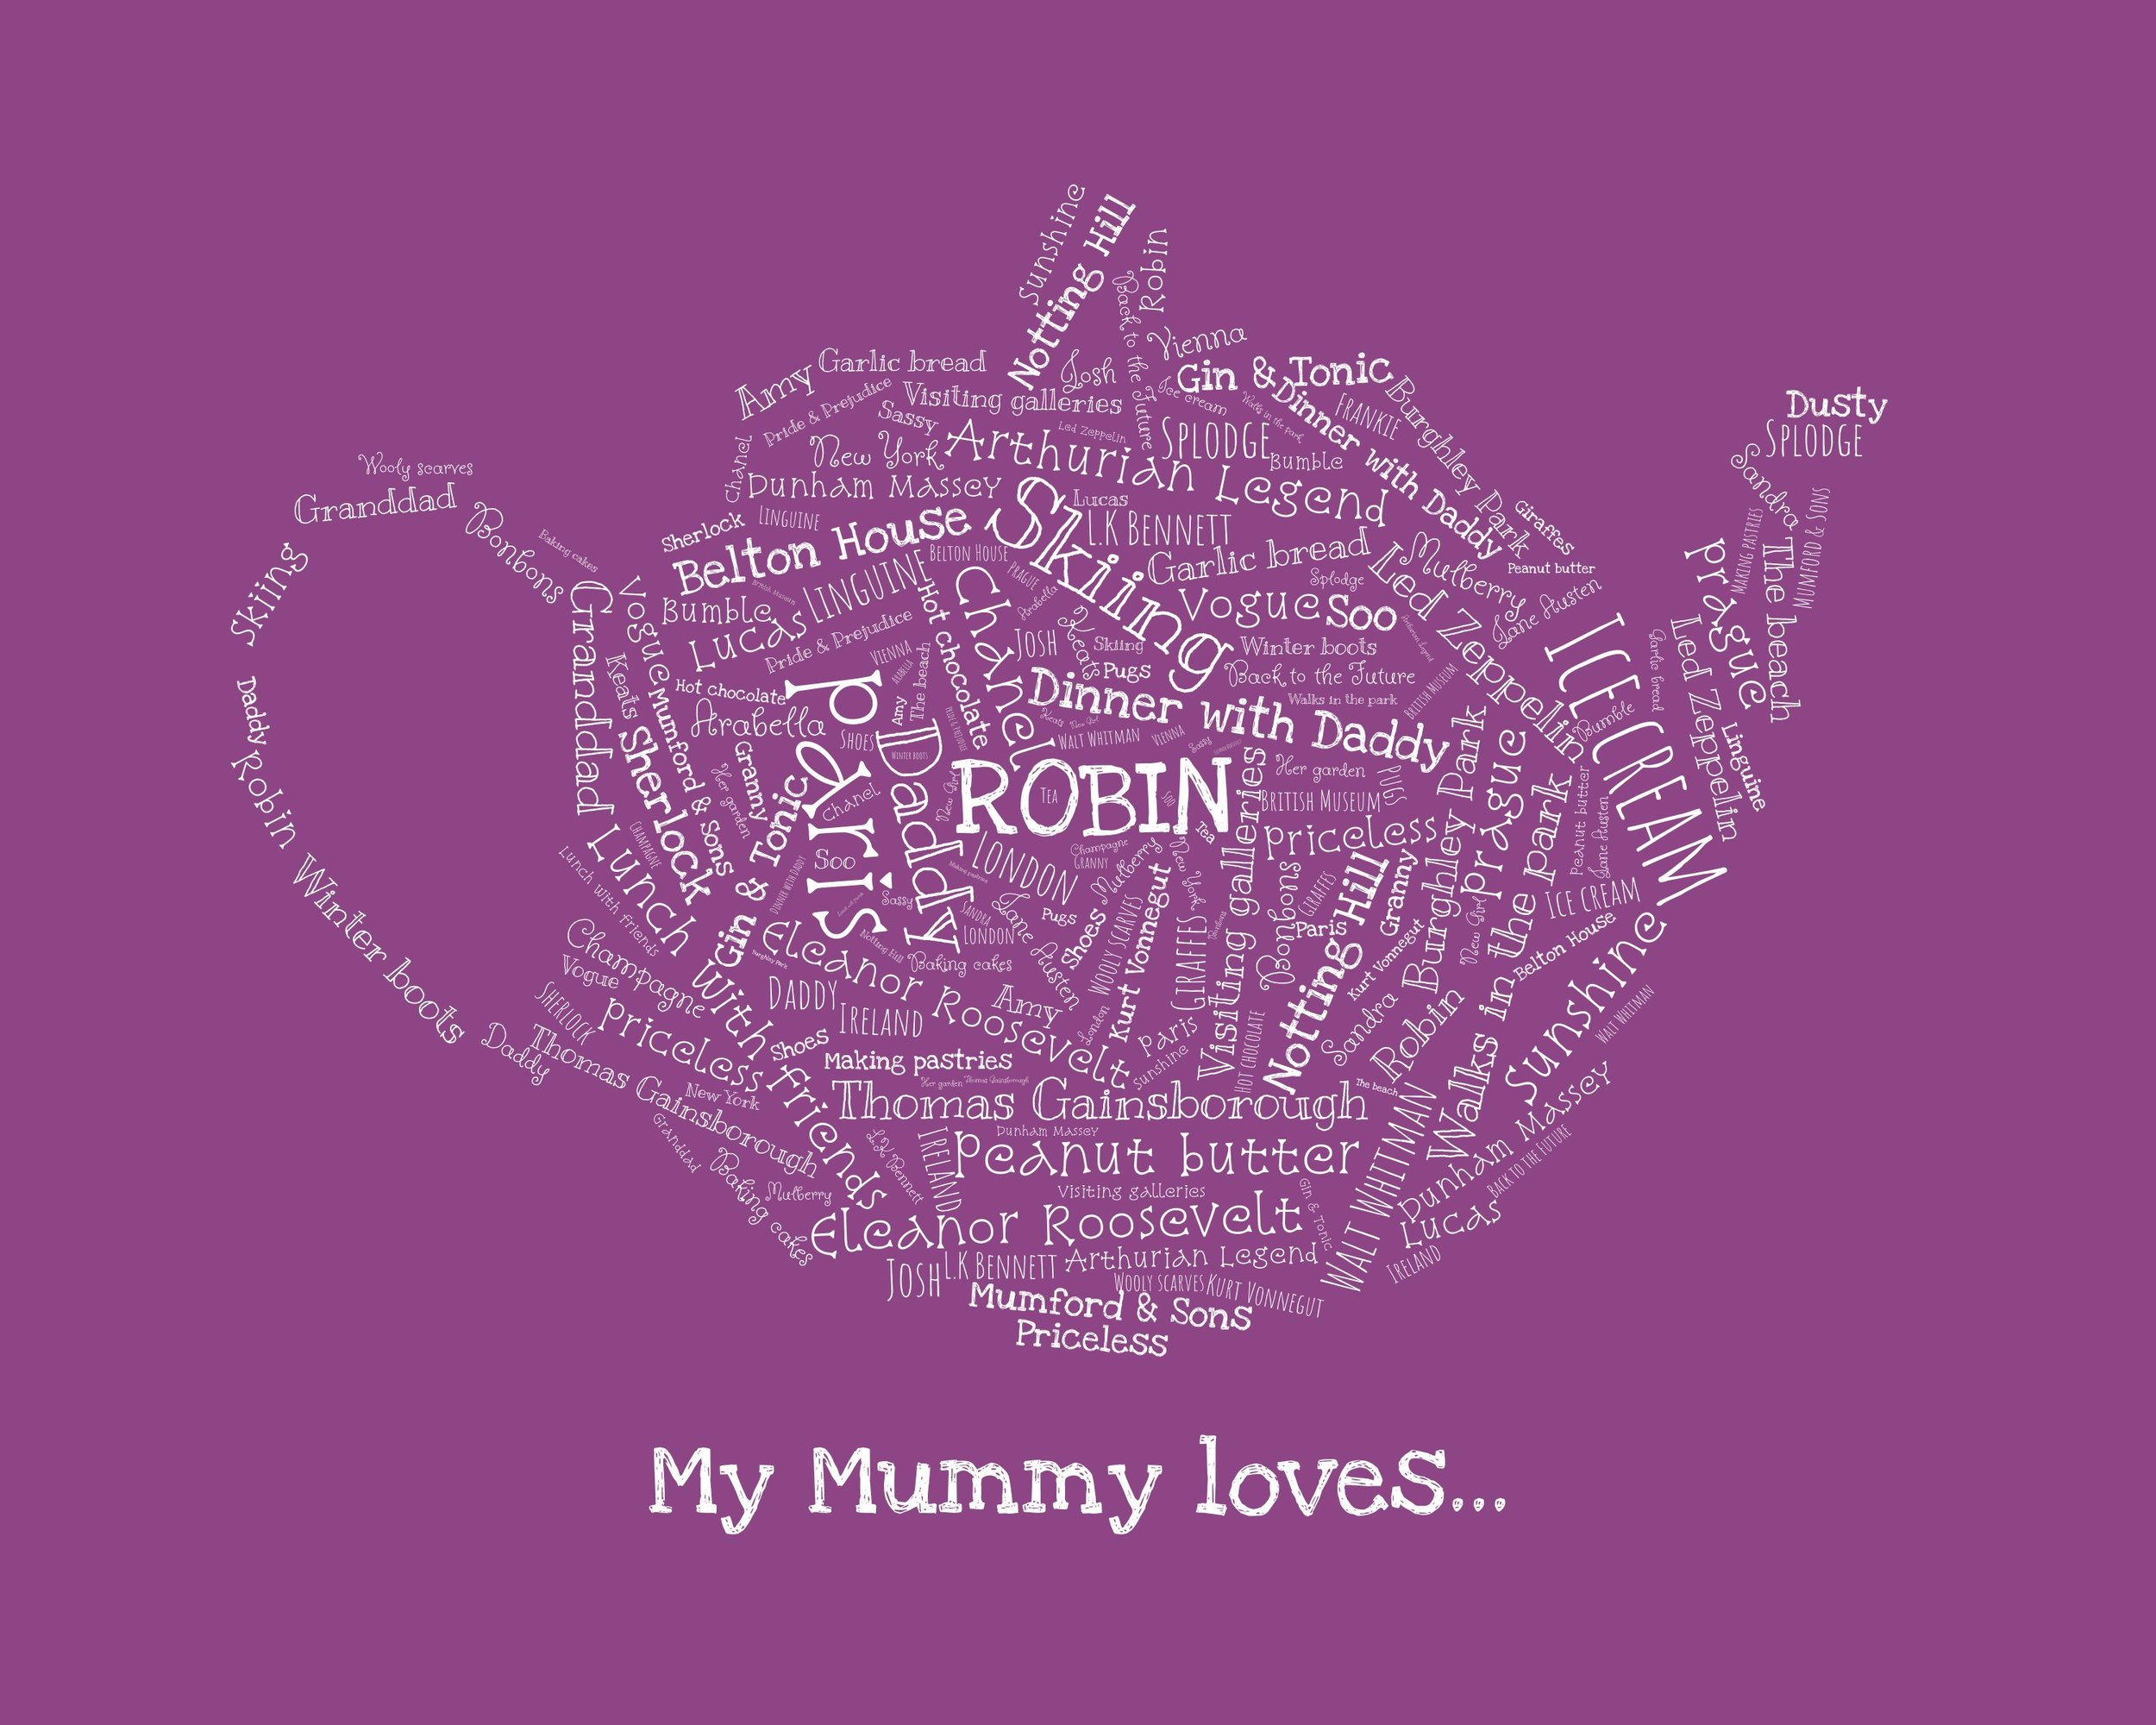 Word shape - Our Word Shape is a flexible design to celebrate everything you love about your mum.From teapots and champagne flutes to shoes and pets, we're sure you'll find something that suits her personal interests.